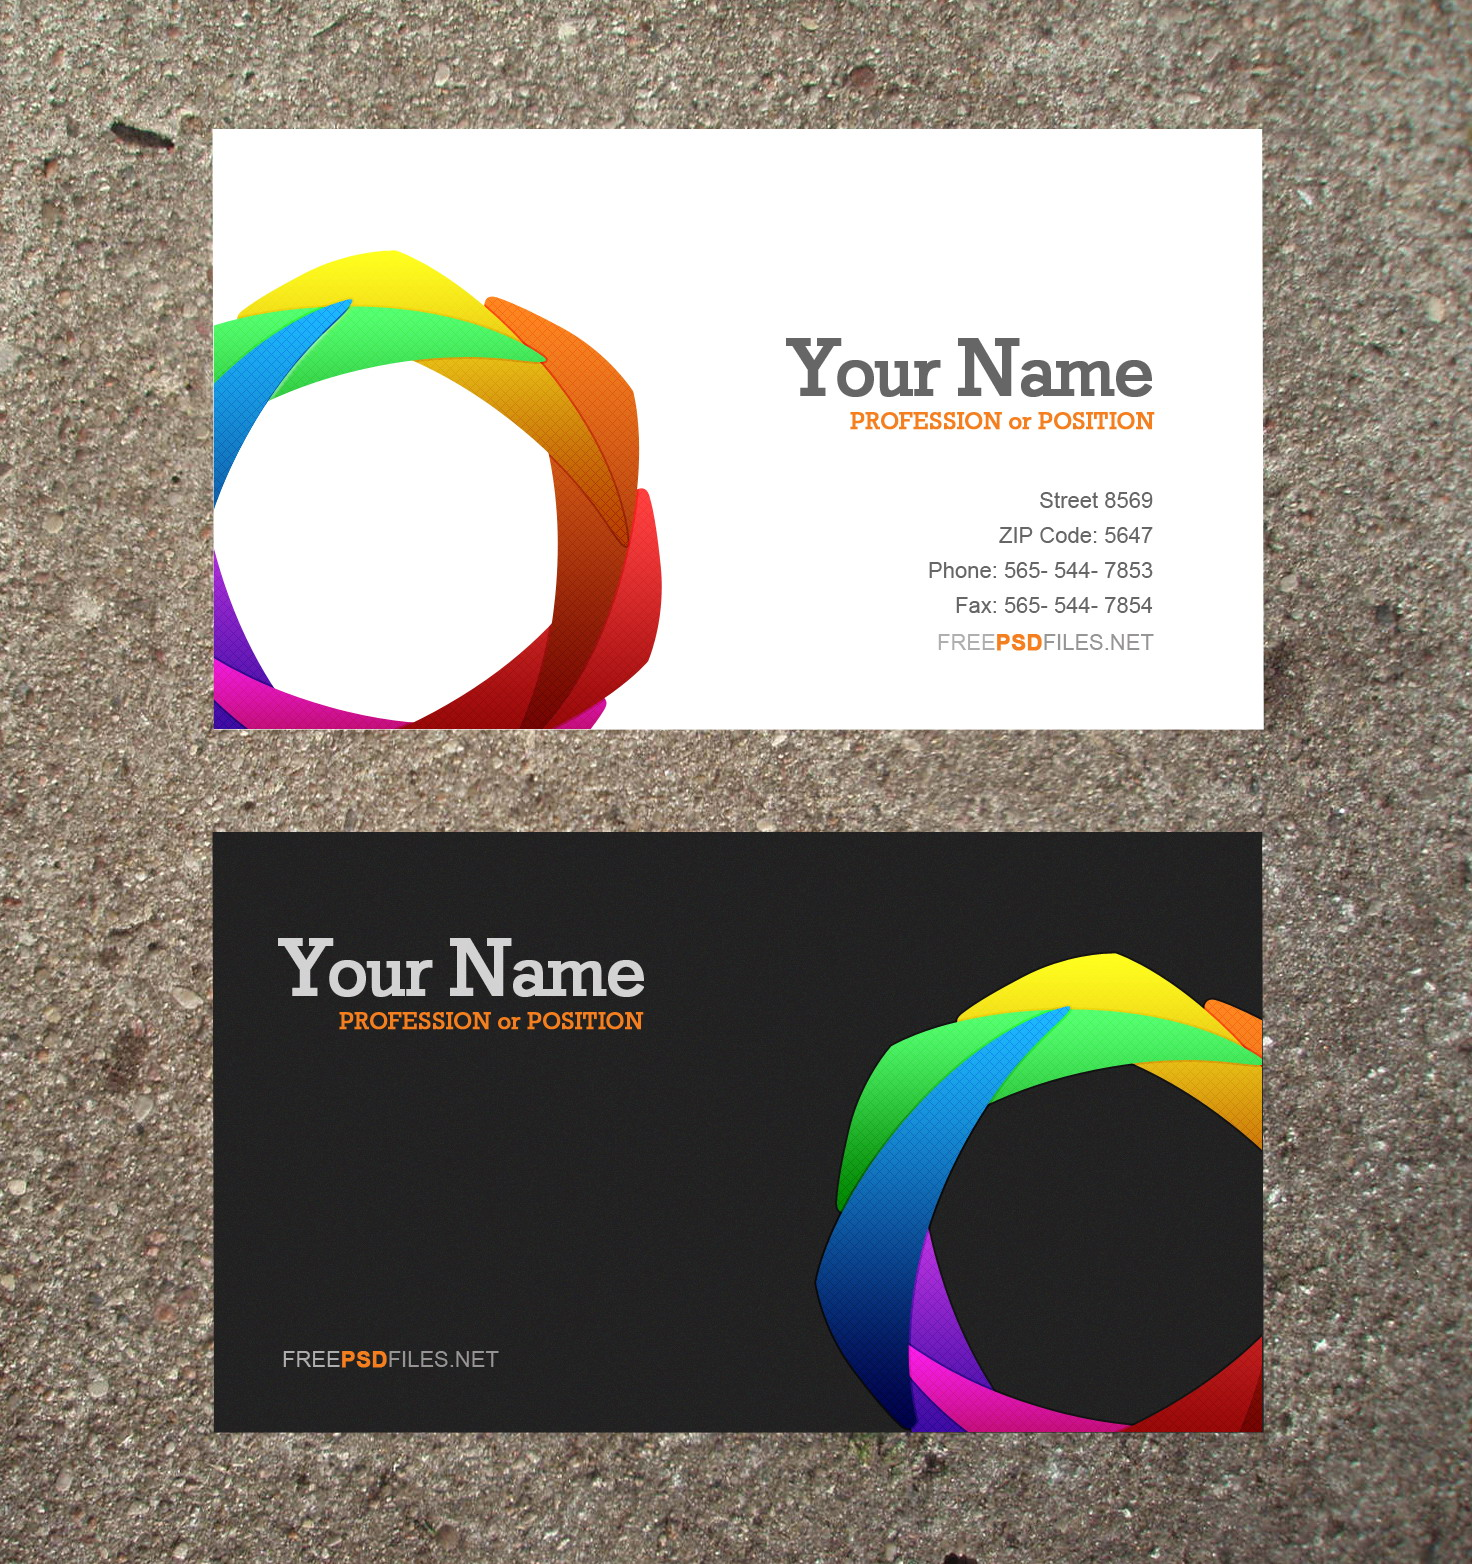 Business card templates 28 images hairstyles business card business card templates 10 modern business card psd template free images free wajeb Image collections